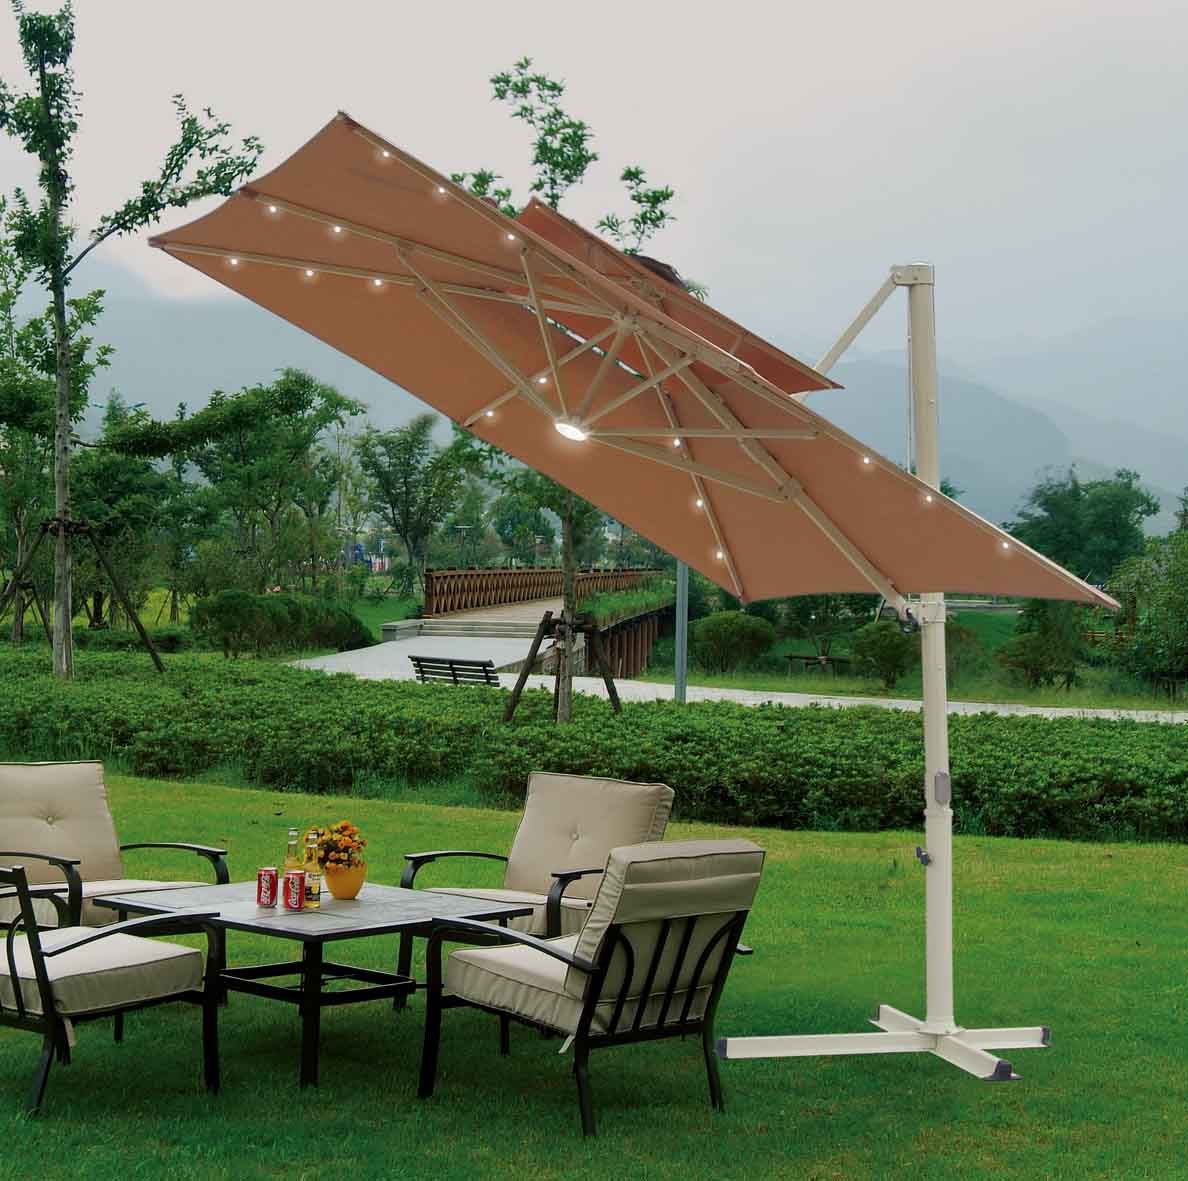 Costco Offset Umbrella | Offset Patio Umbrellas | Picnic Table Umbrella